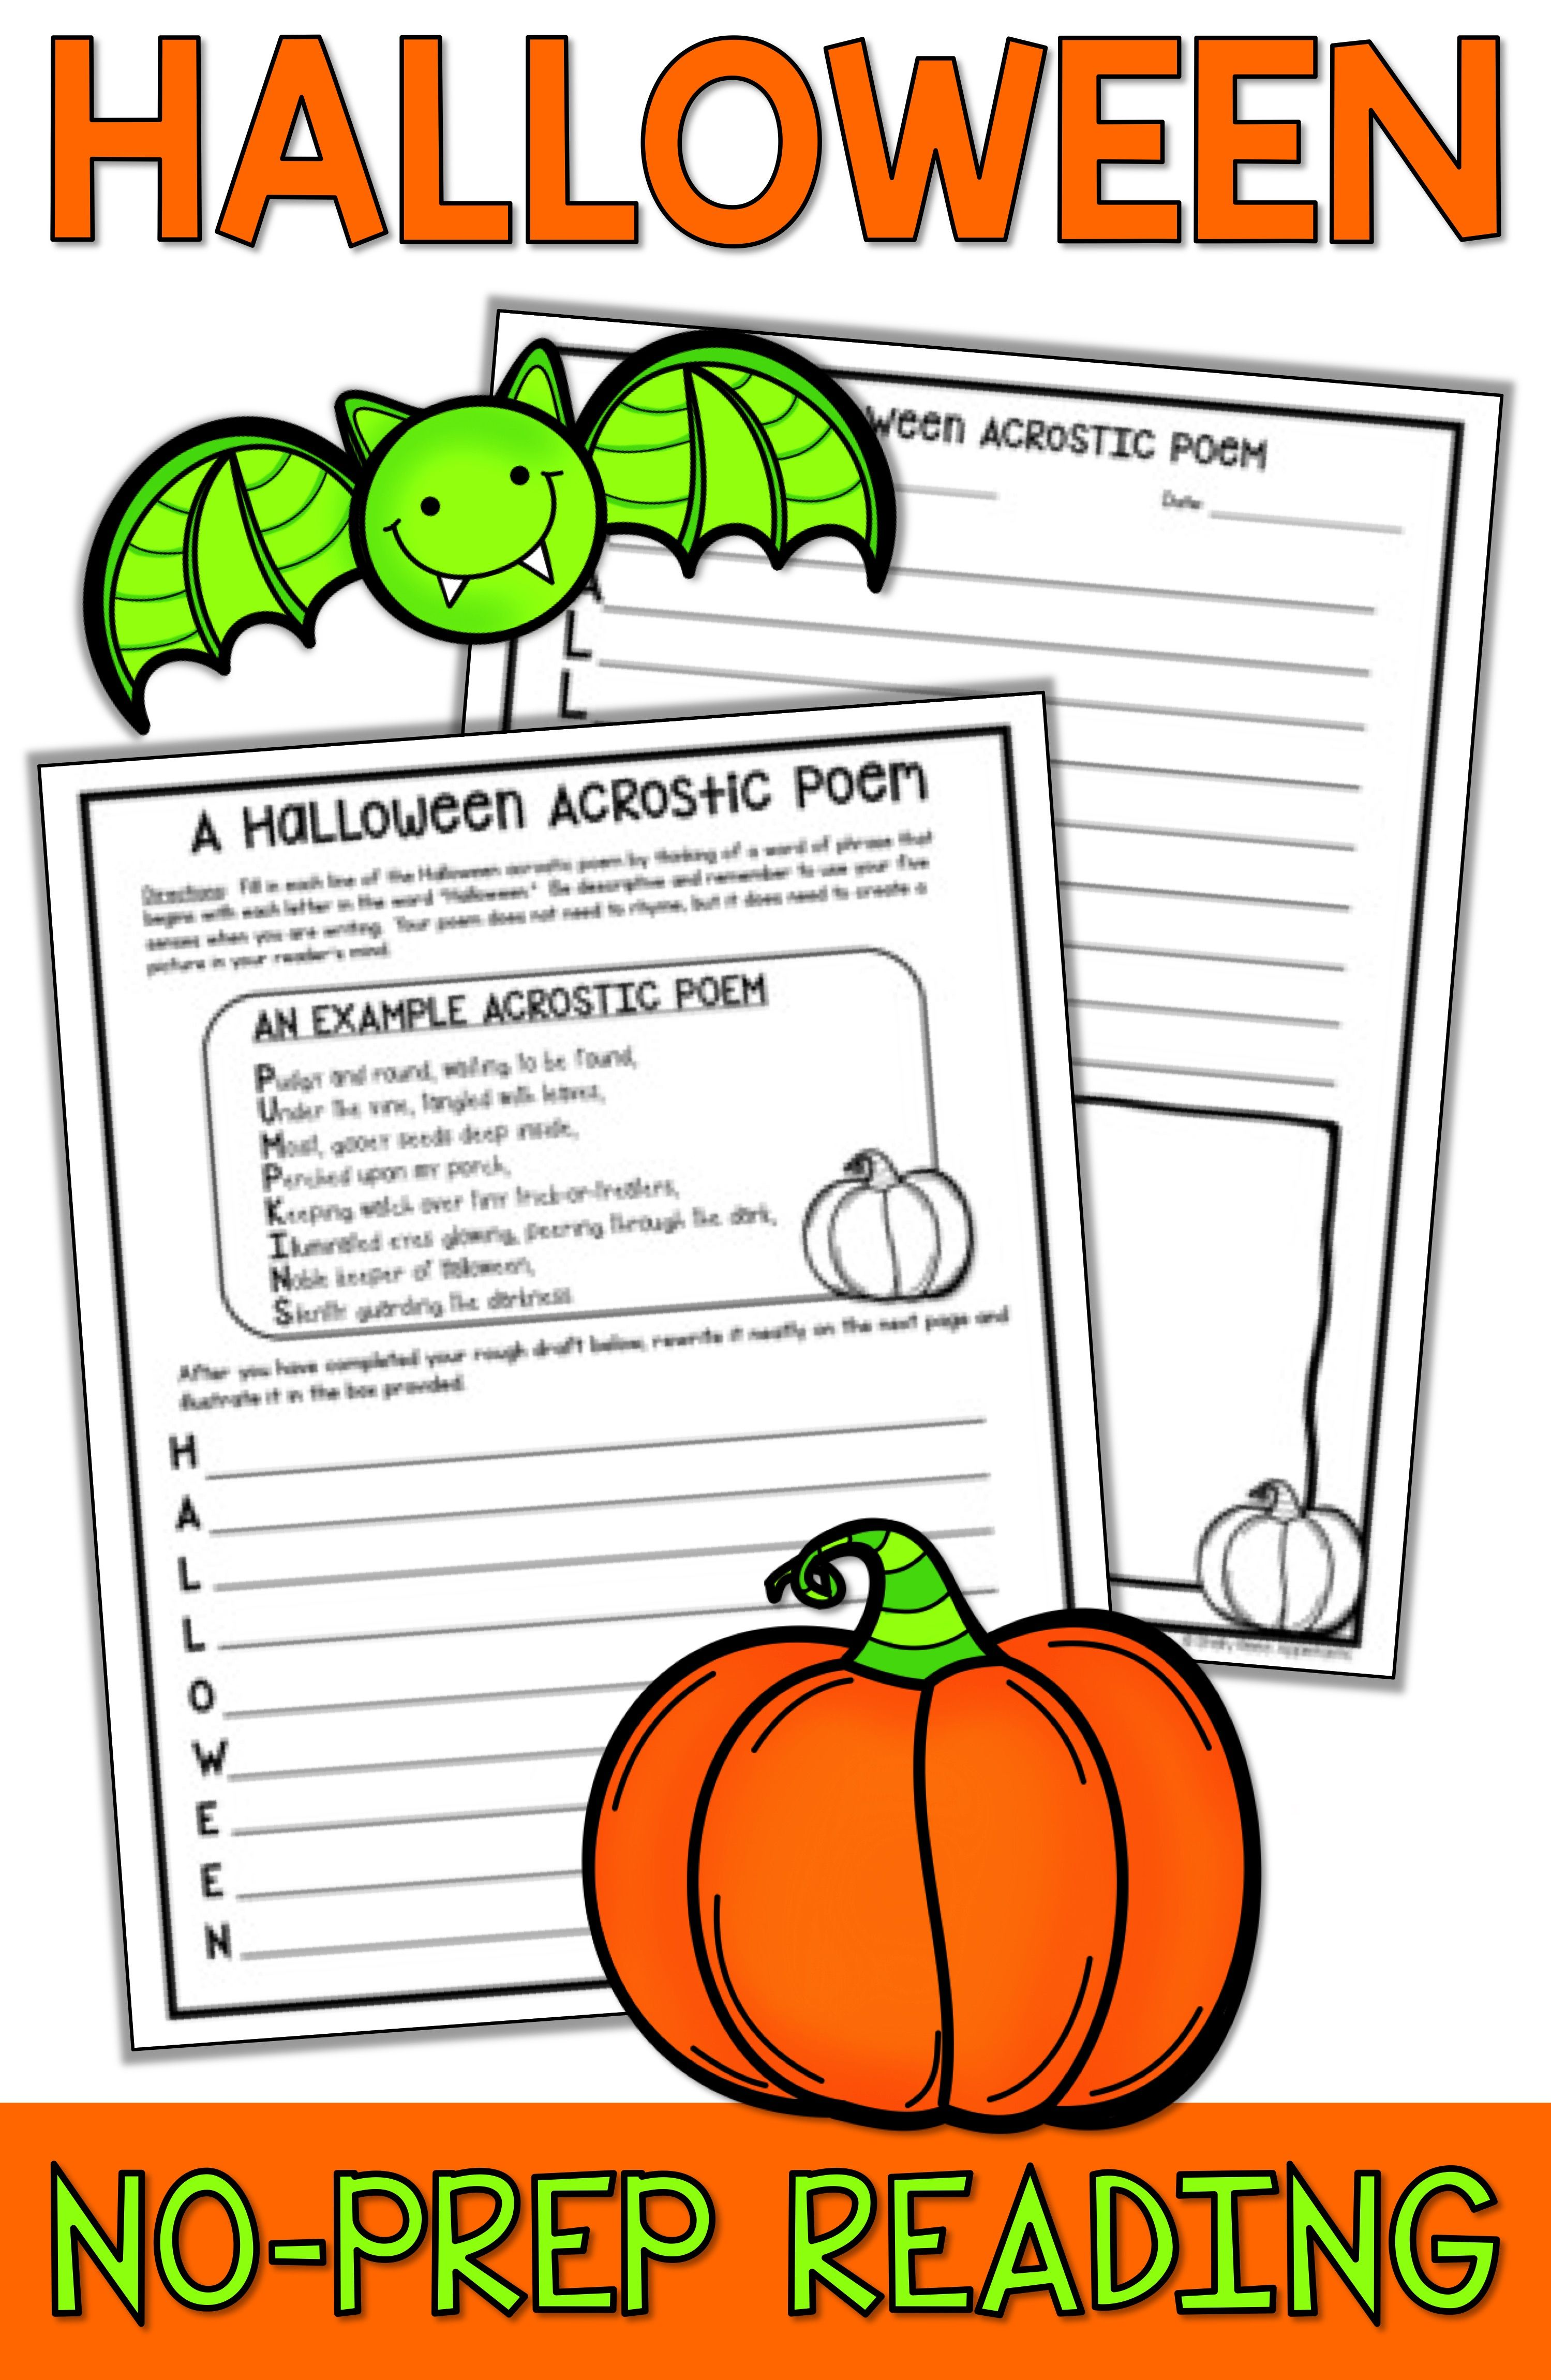 Halloween Reading Packet